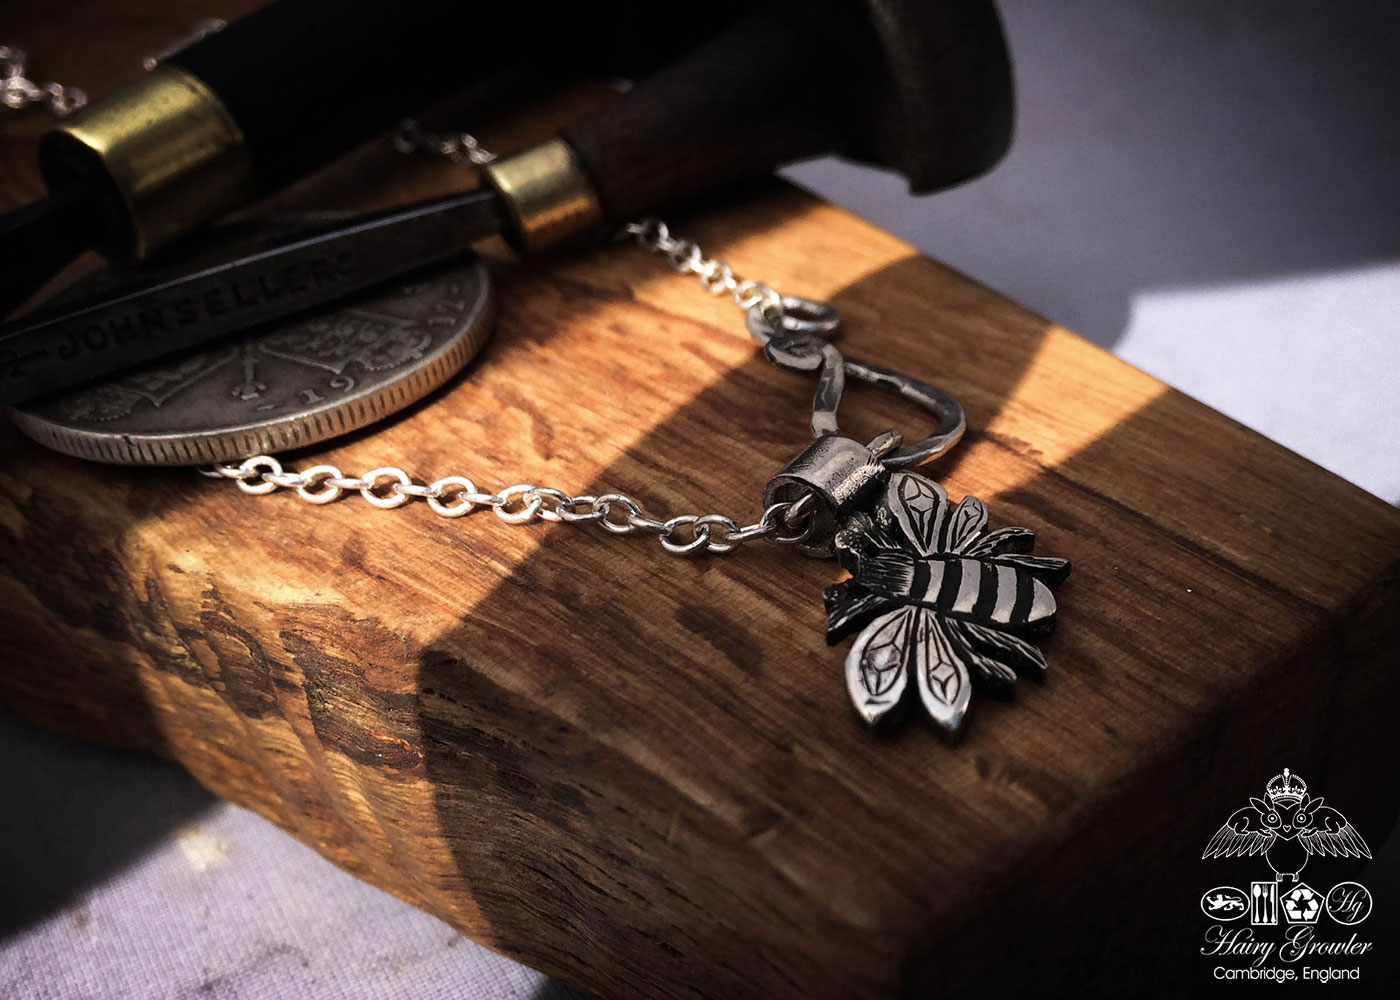 handcrafted silver bee charm for a tree sculpture, necklace or bracelet